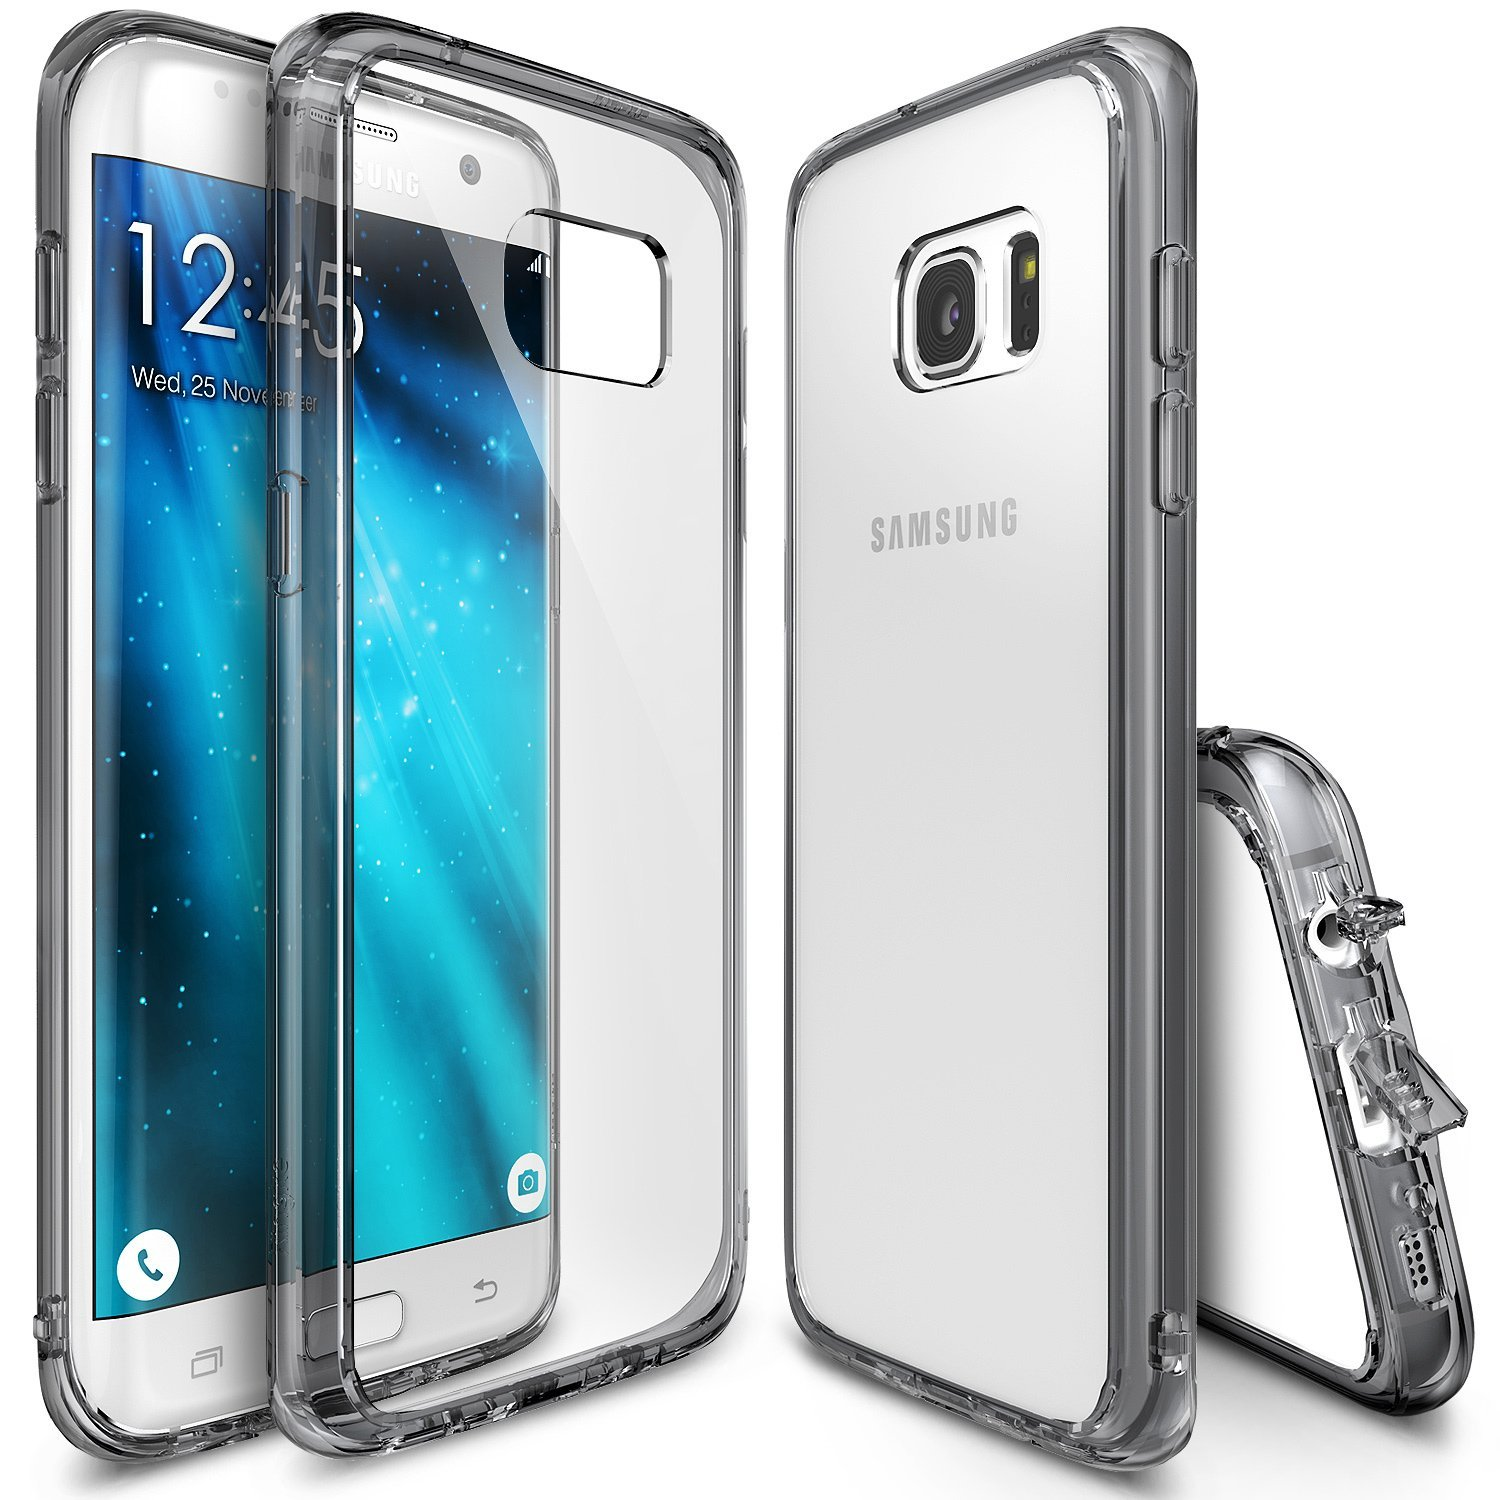 new styles 4b4ad 4256b US $11.99 |Ringke Fusion Case For Galaxy S7 Edge Hard Back Panel + Soft TPU  Frame MIL STD Cases for Samsung Galaxy S7 Edge-in Fitted Cases from ...